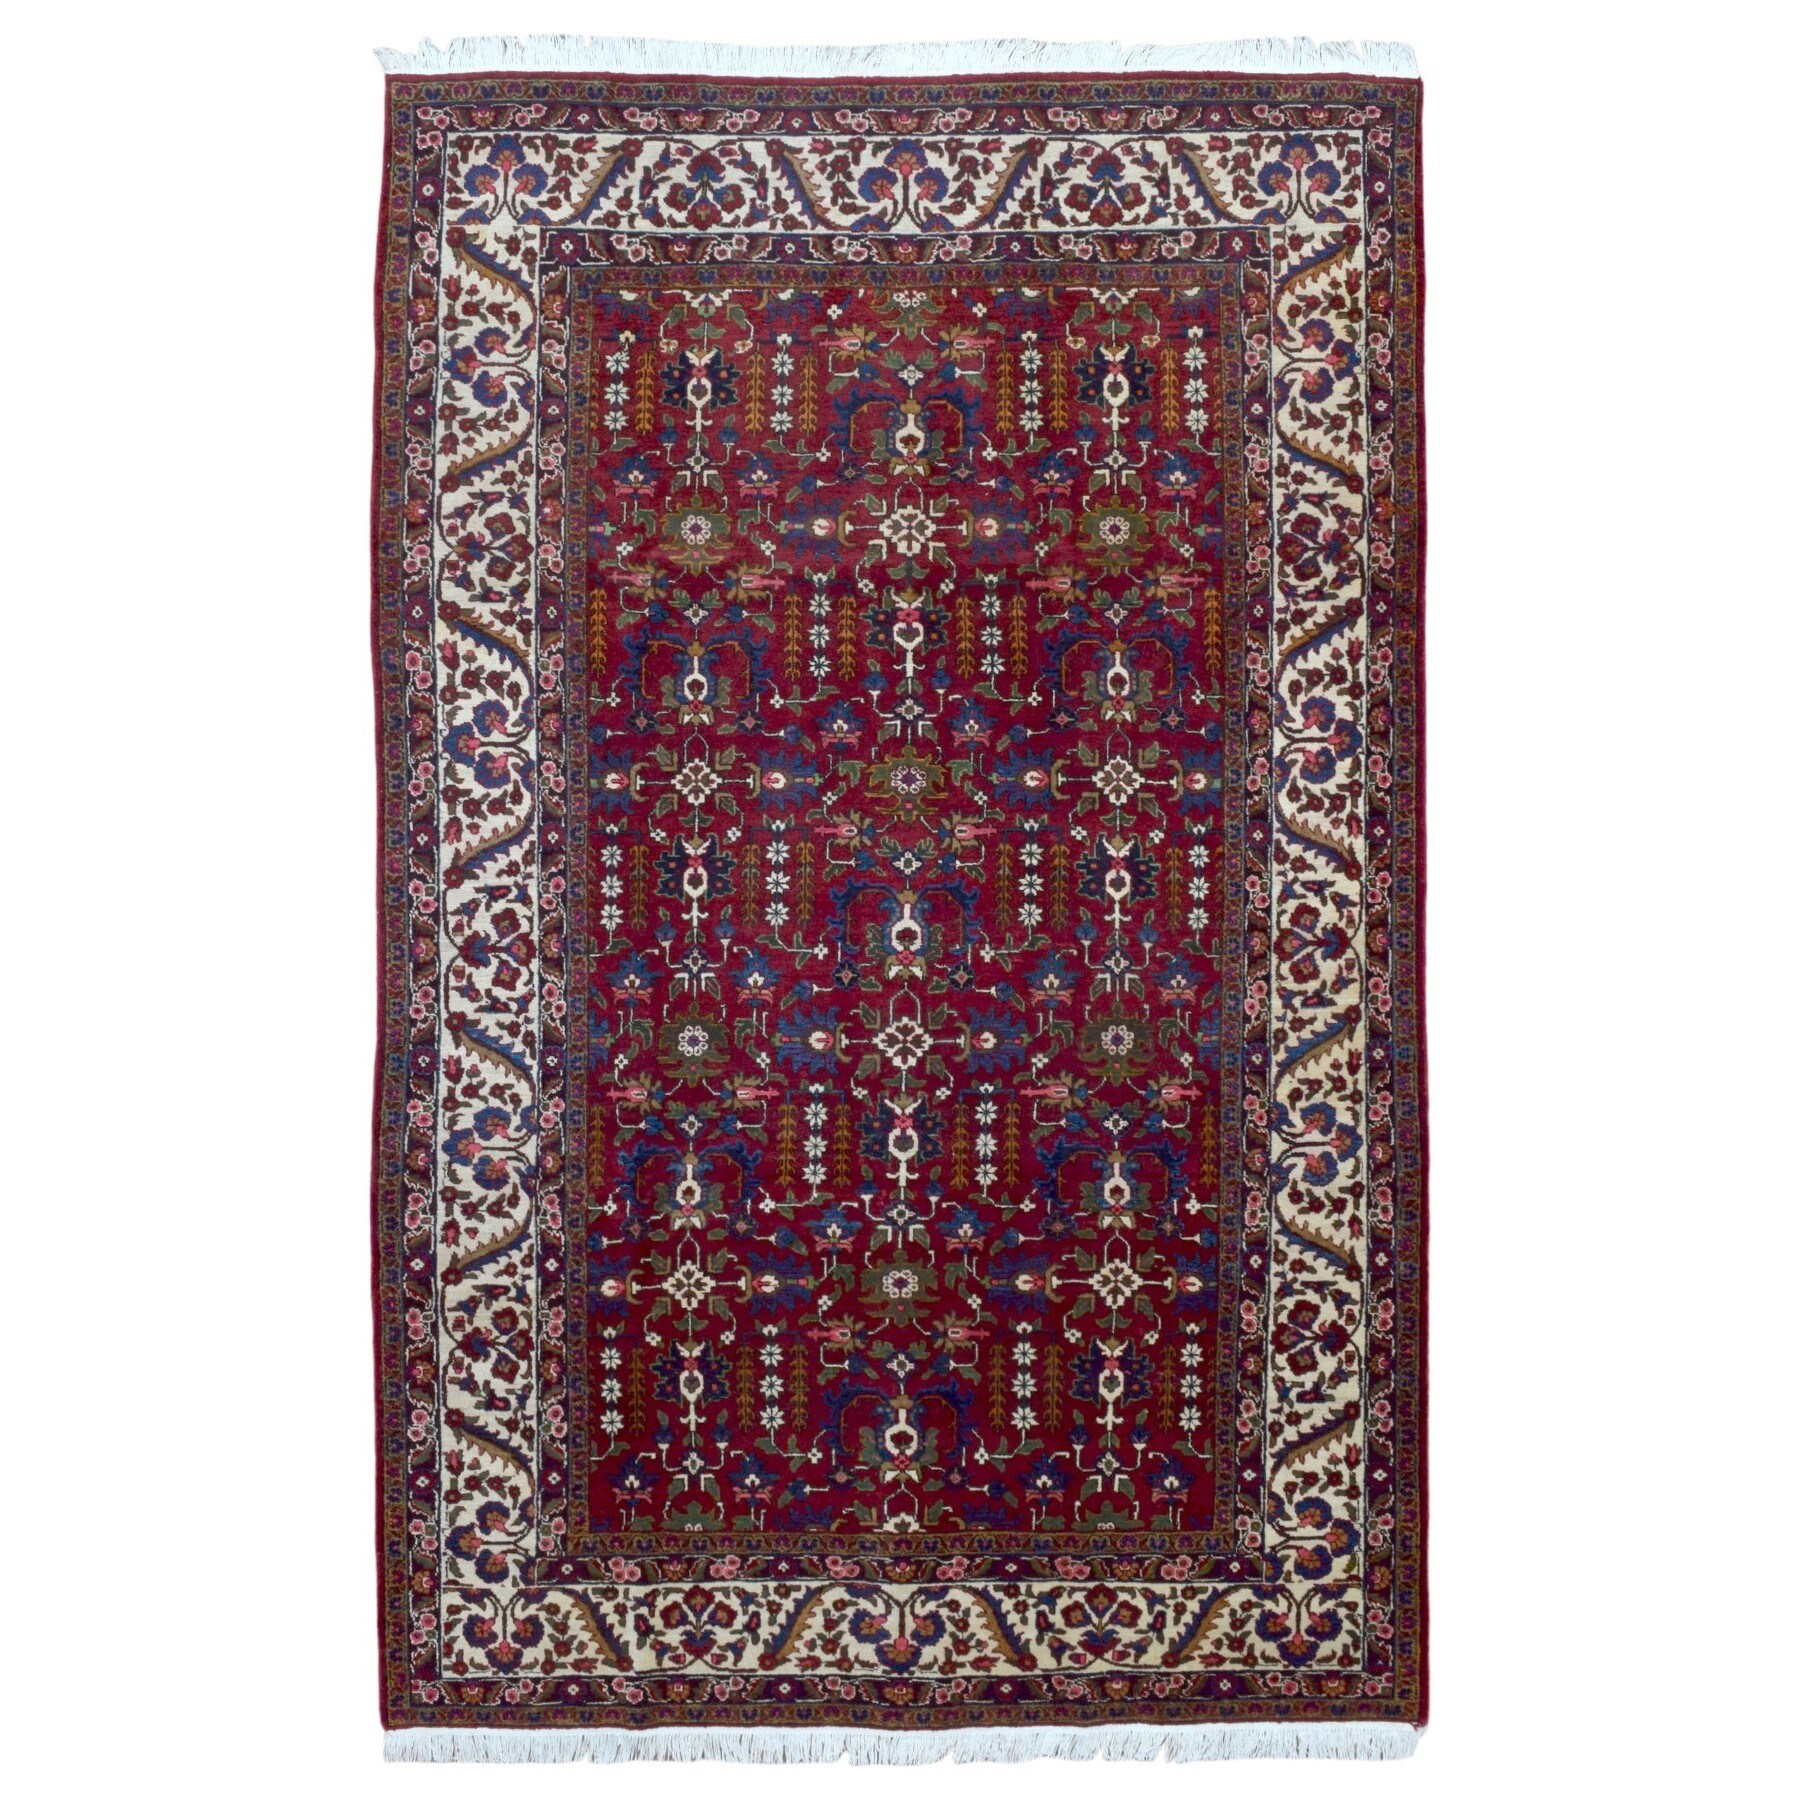 FineRugCollection Handmade Semi-Antique Persian Heriz Red Wool Oriental Rug (7'3 x 11'6)